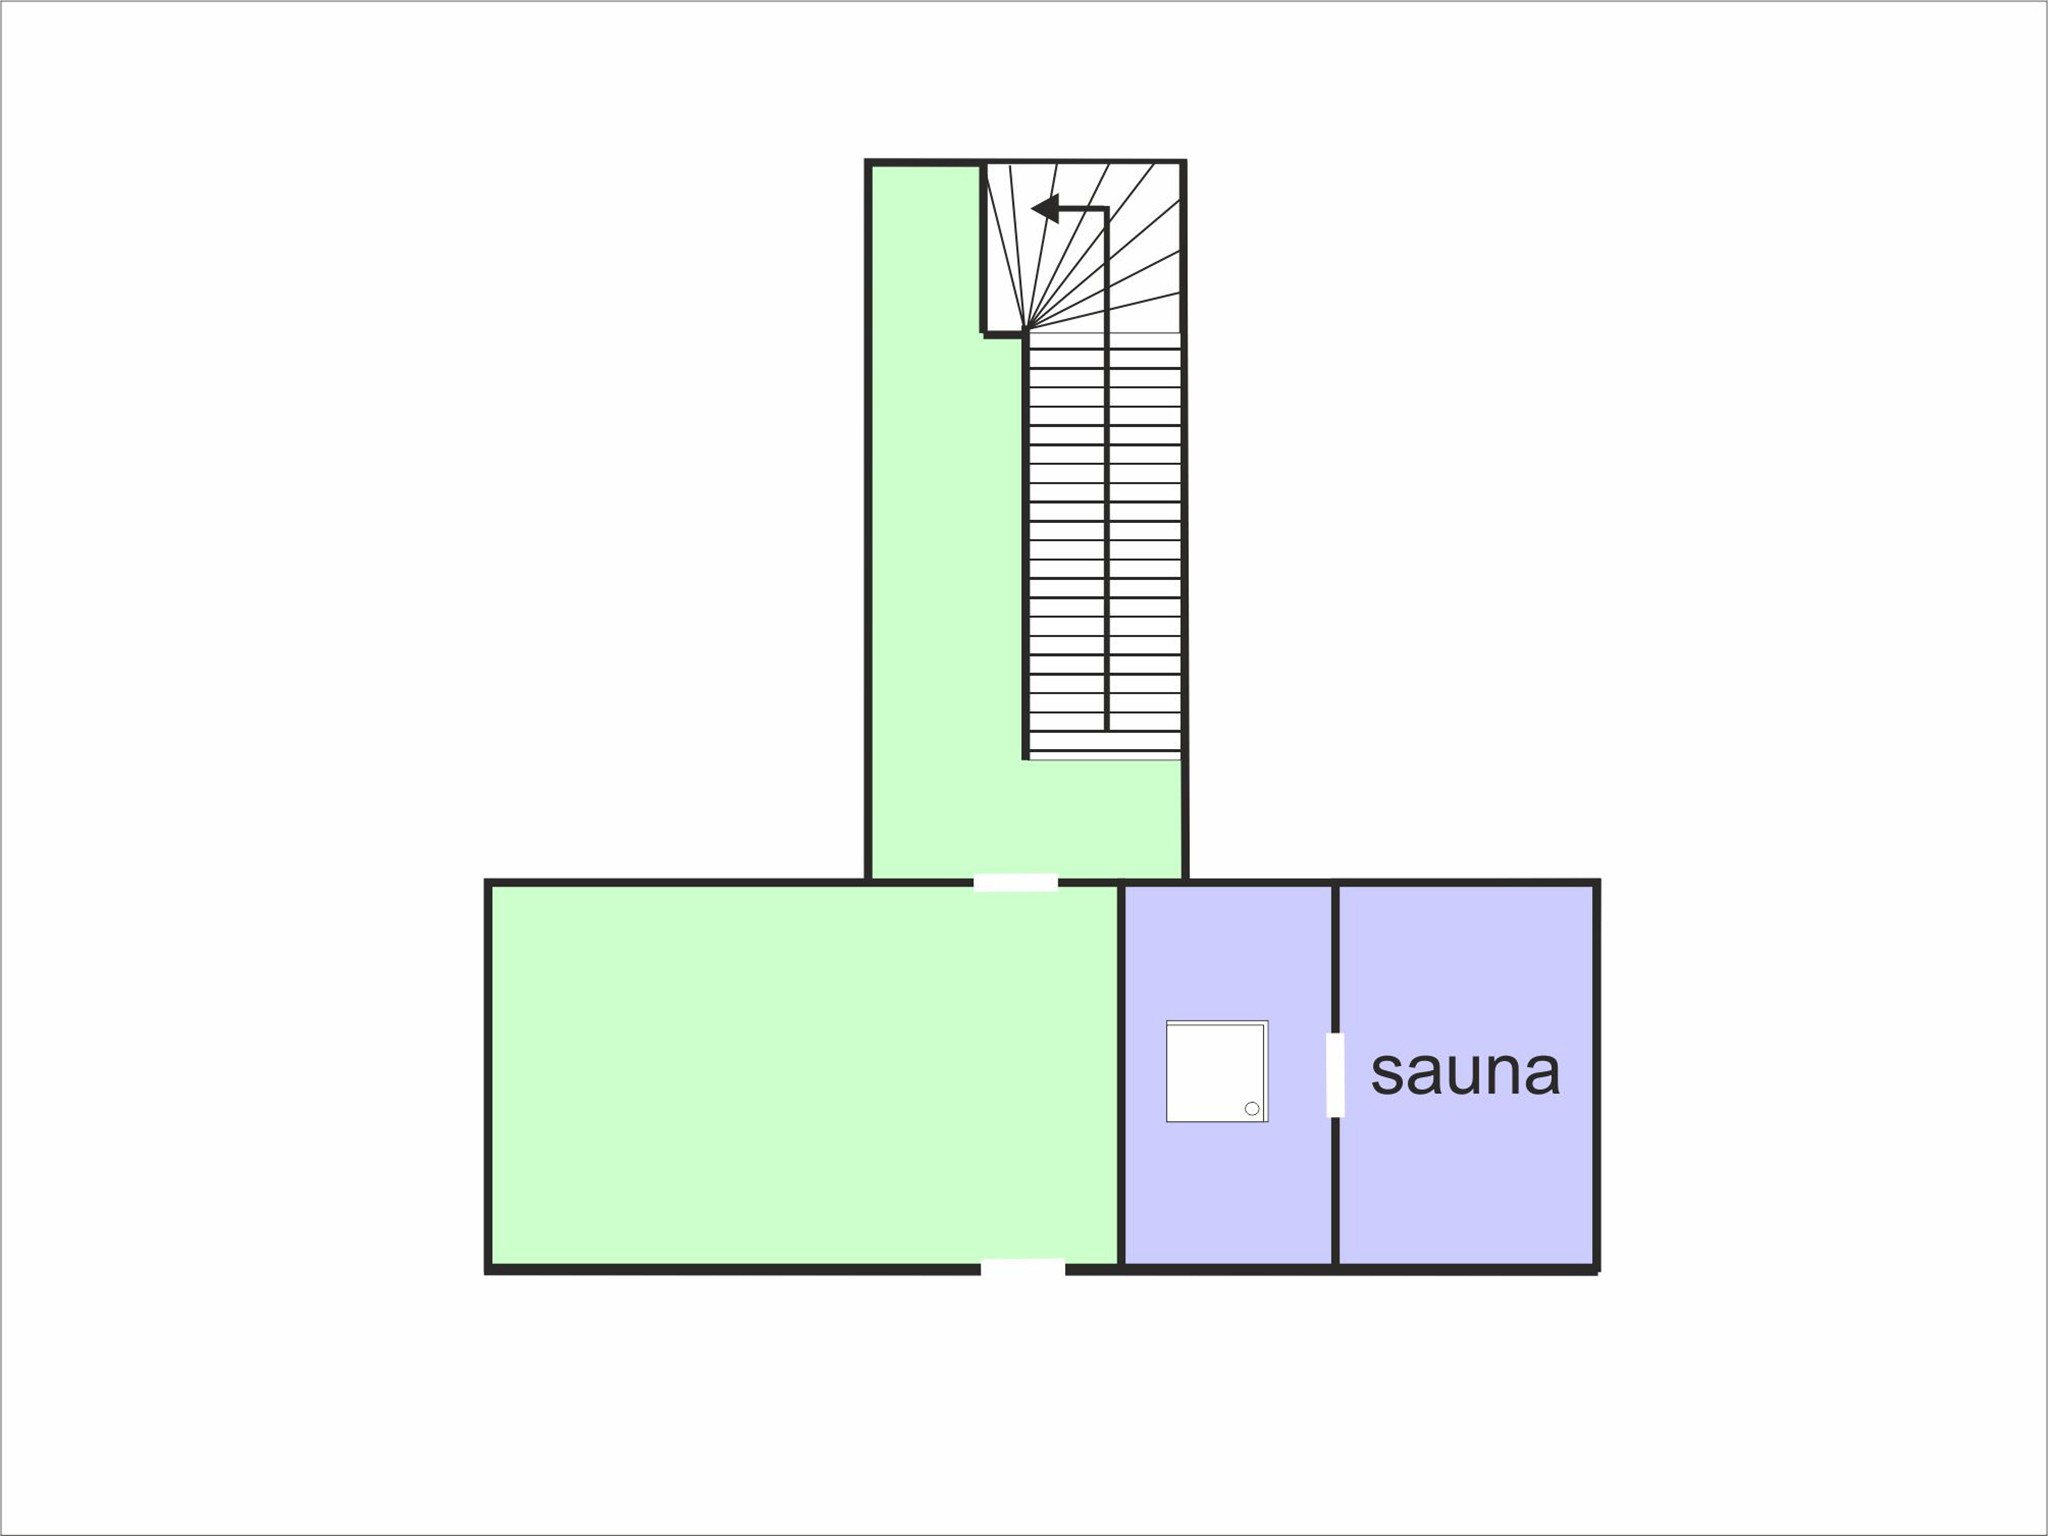 Chalet Chaud - floor plan - level 0